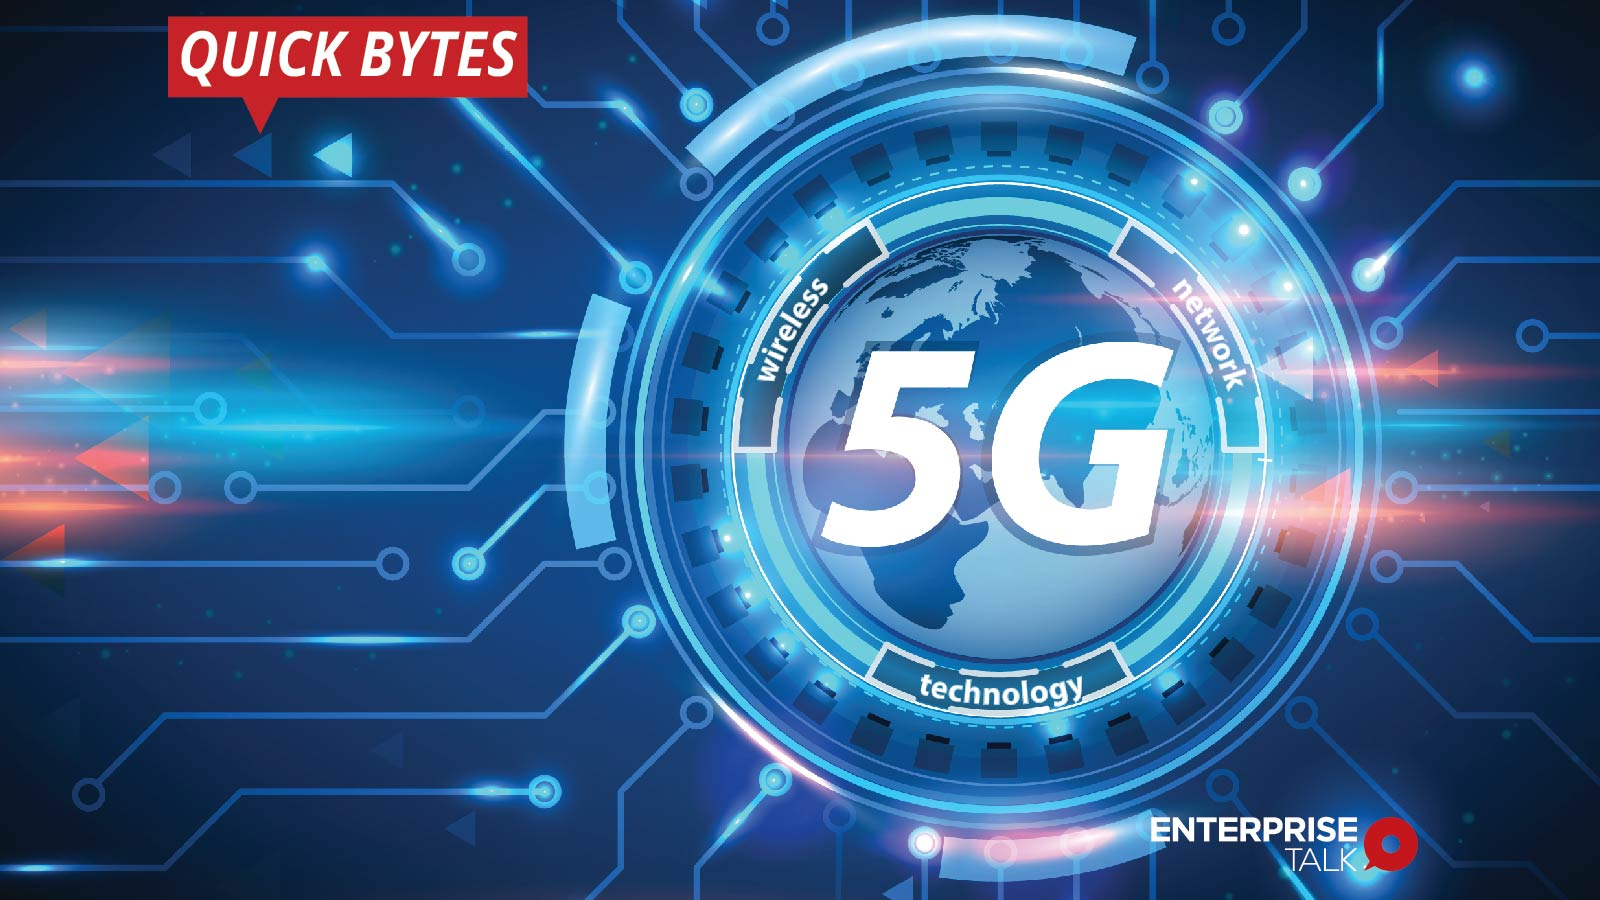 IBM's telco cloud targets edge and 5G innovation